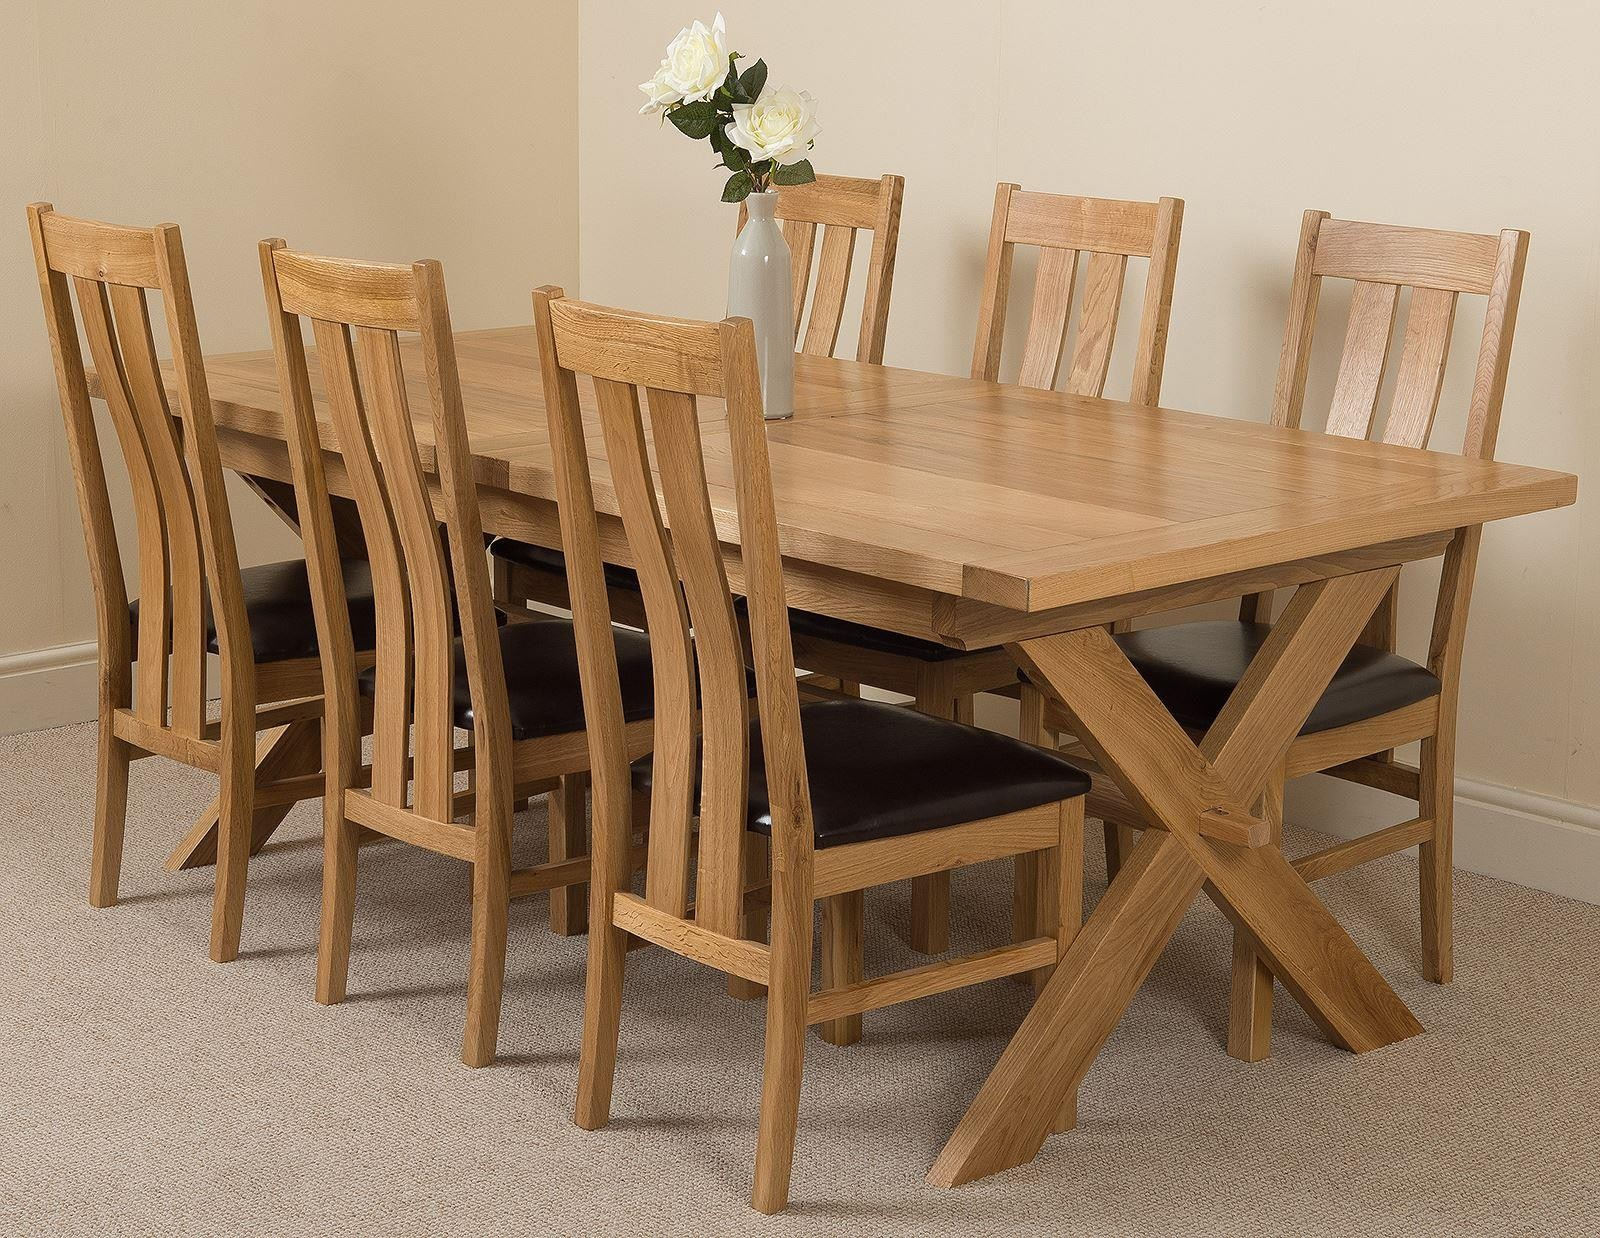 Vermont Solid Oak 200cm-240cm Crossed Leg Extending Dining Table with 6 Princeton Solid Oak Dining Chairs [Light Oak and Brown Leather]